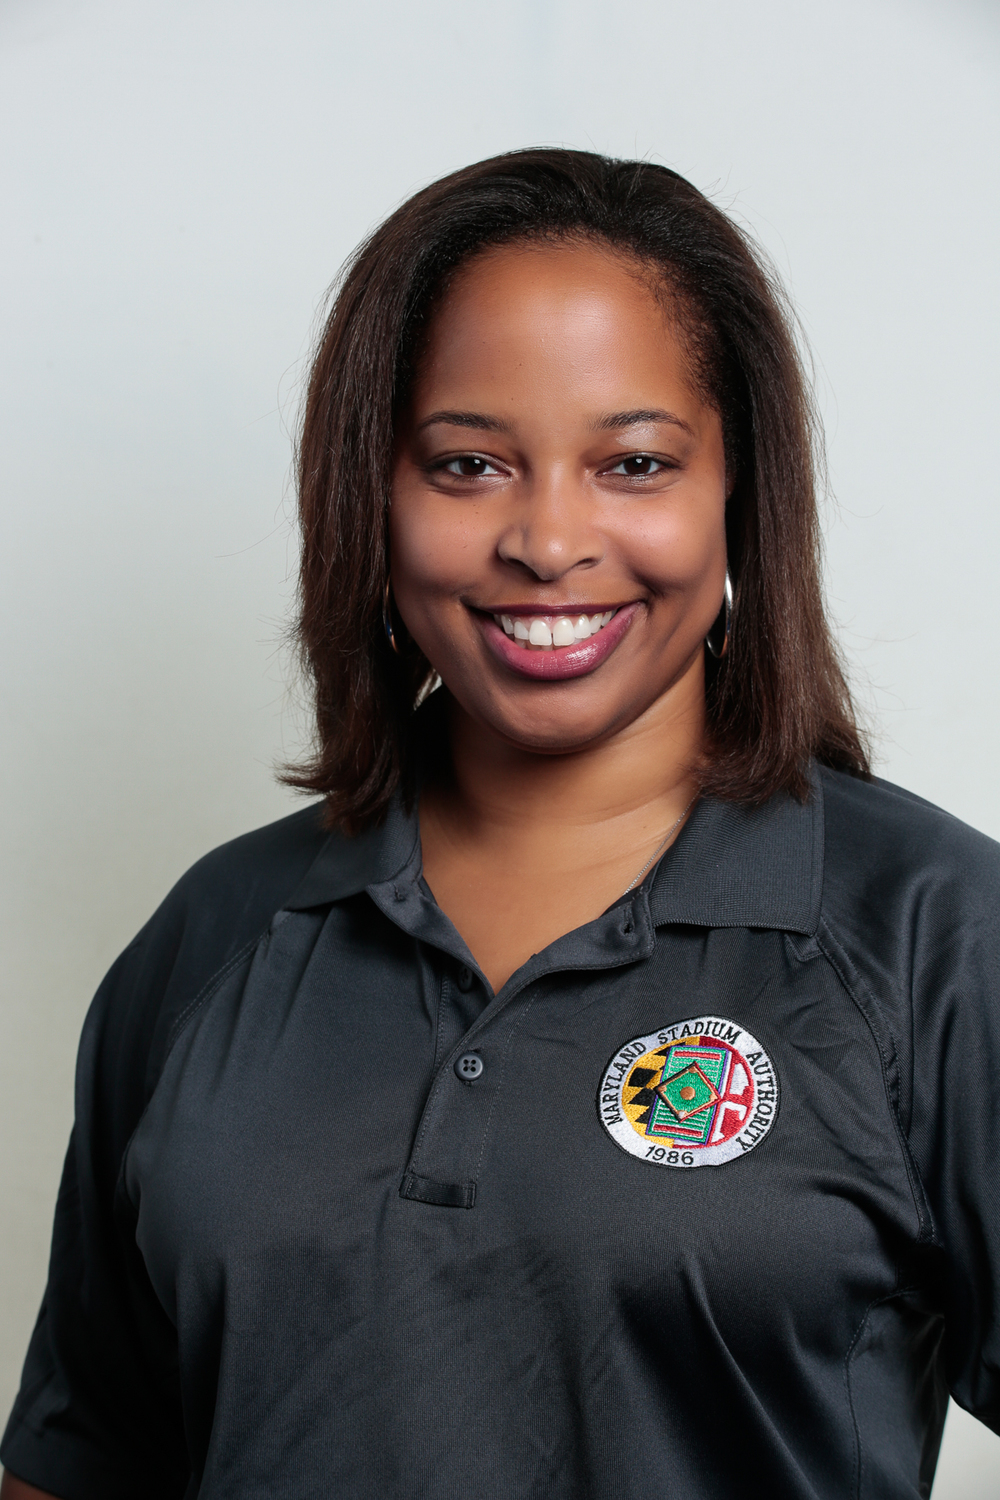 Jana Brooks, Event and Tenant Services Coordinator of the Maryland Stadium Authority